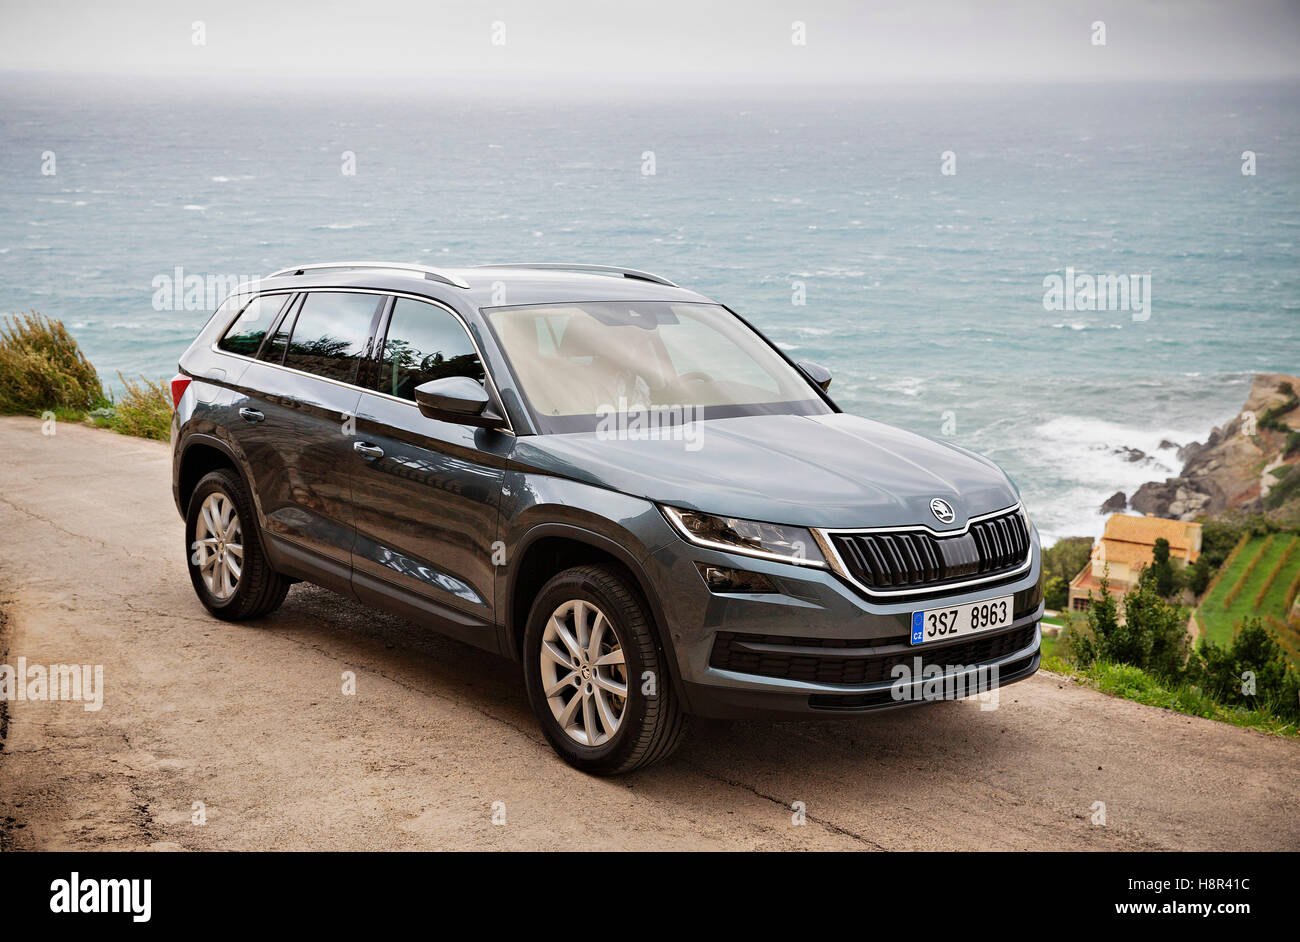 palma de mallorca spain 15th nov 2016 new suv skoda kodiaq was stock photo royalty free. Black Bedroom Furniture Sets. Home Design Ideas